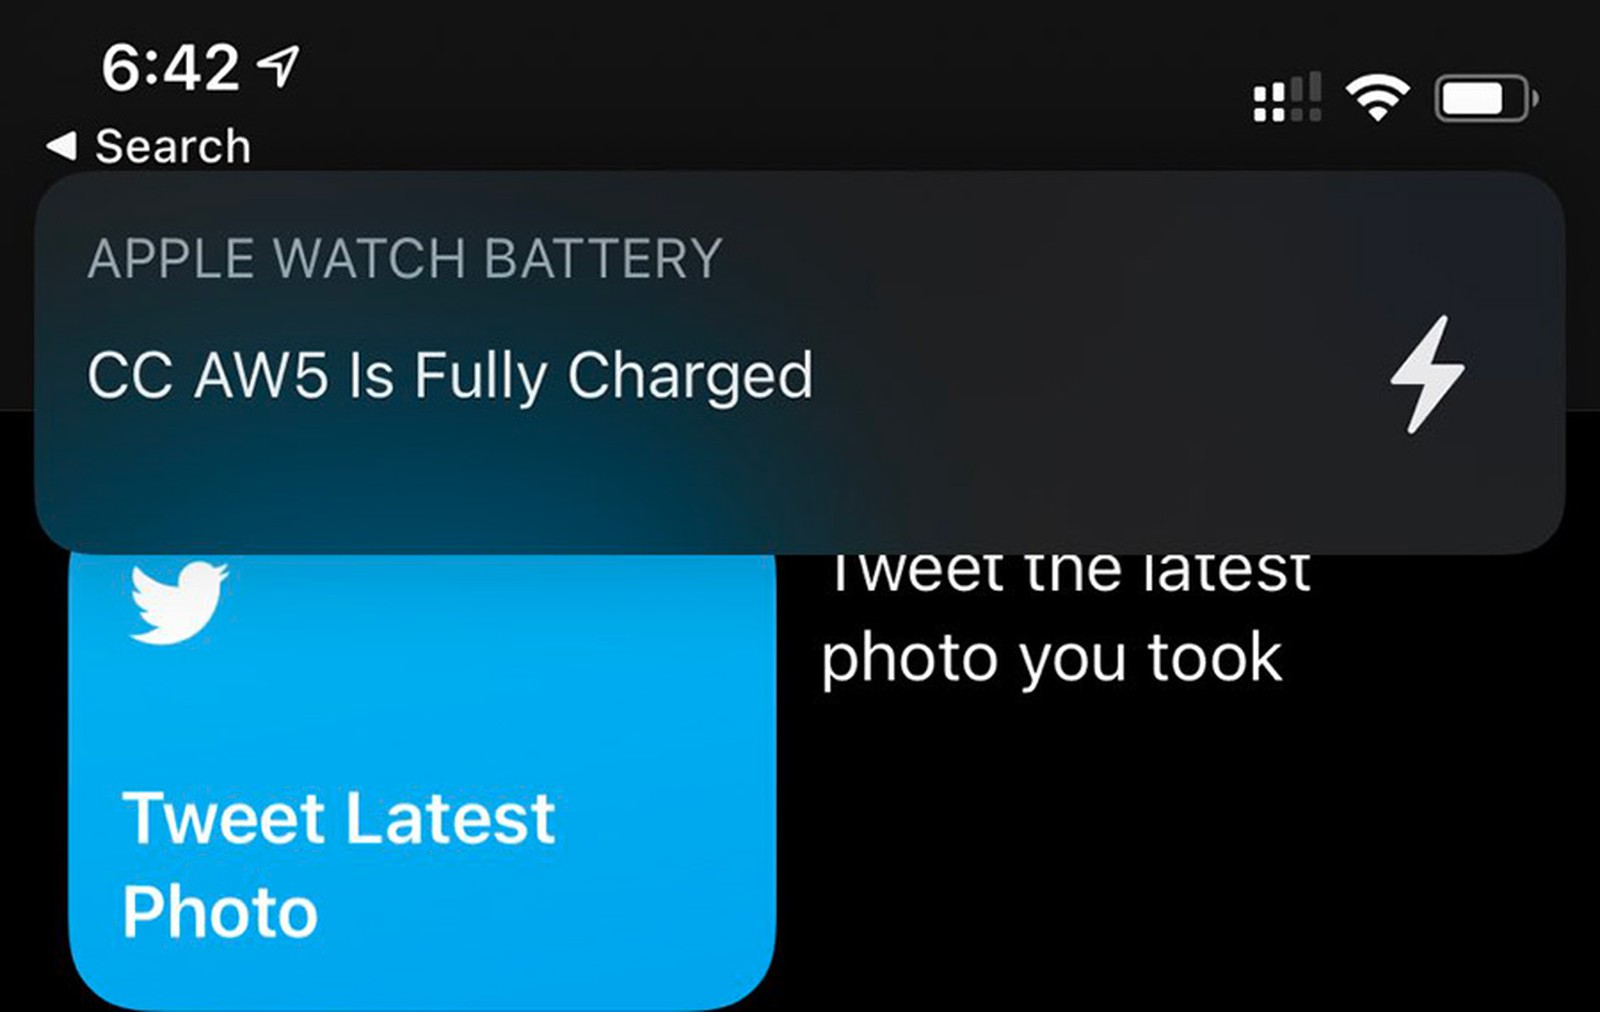 applewatchcharged